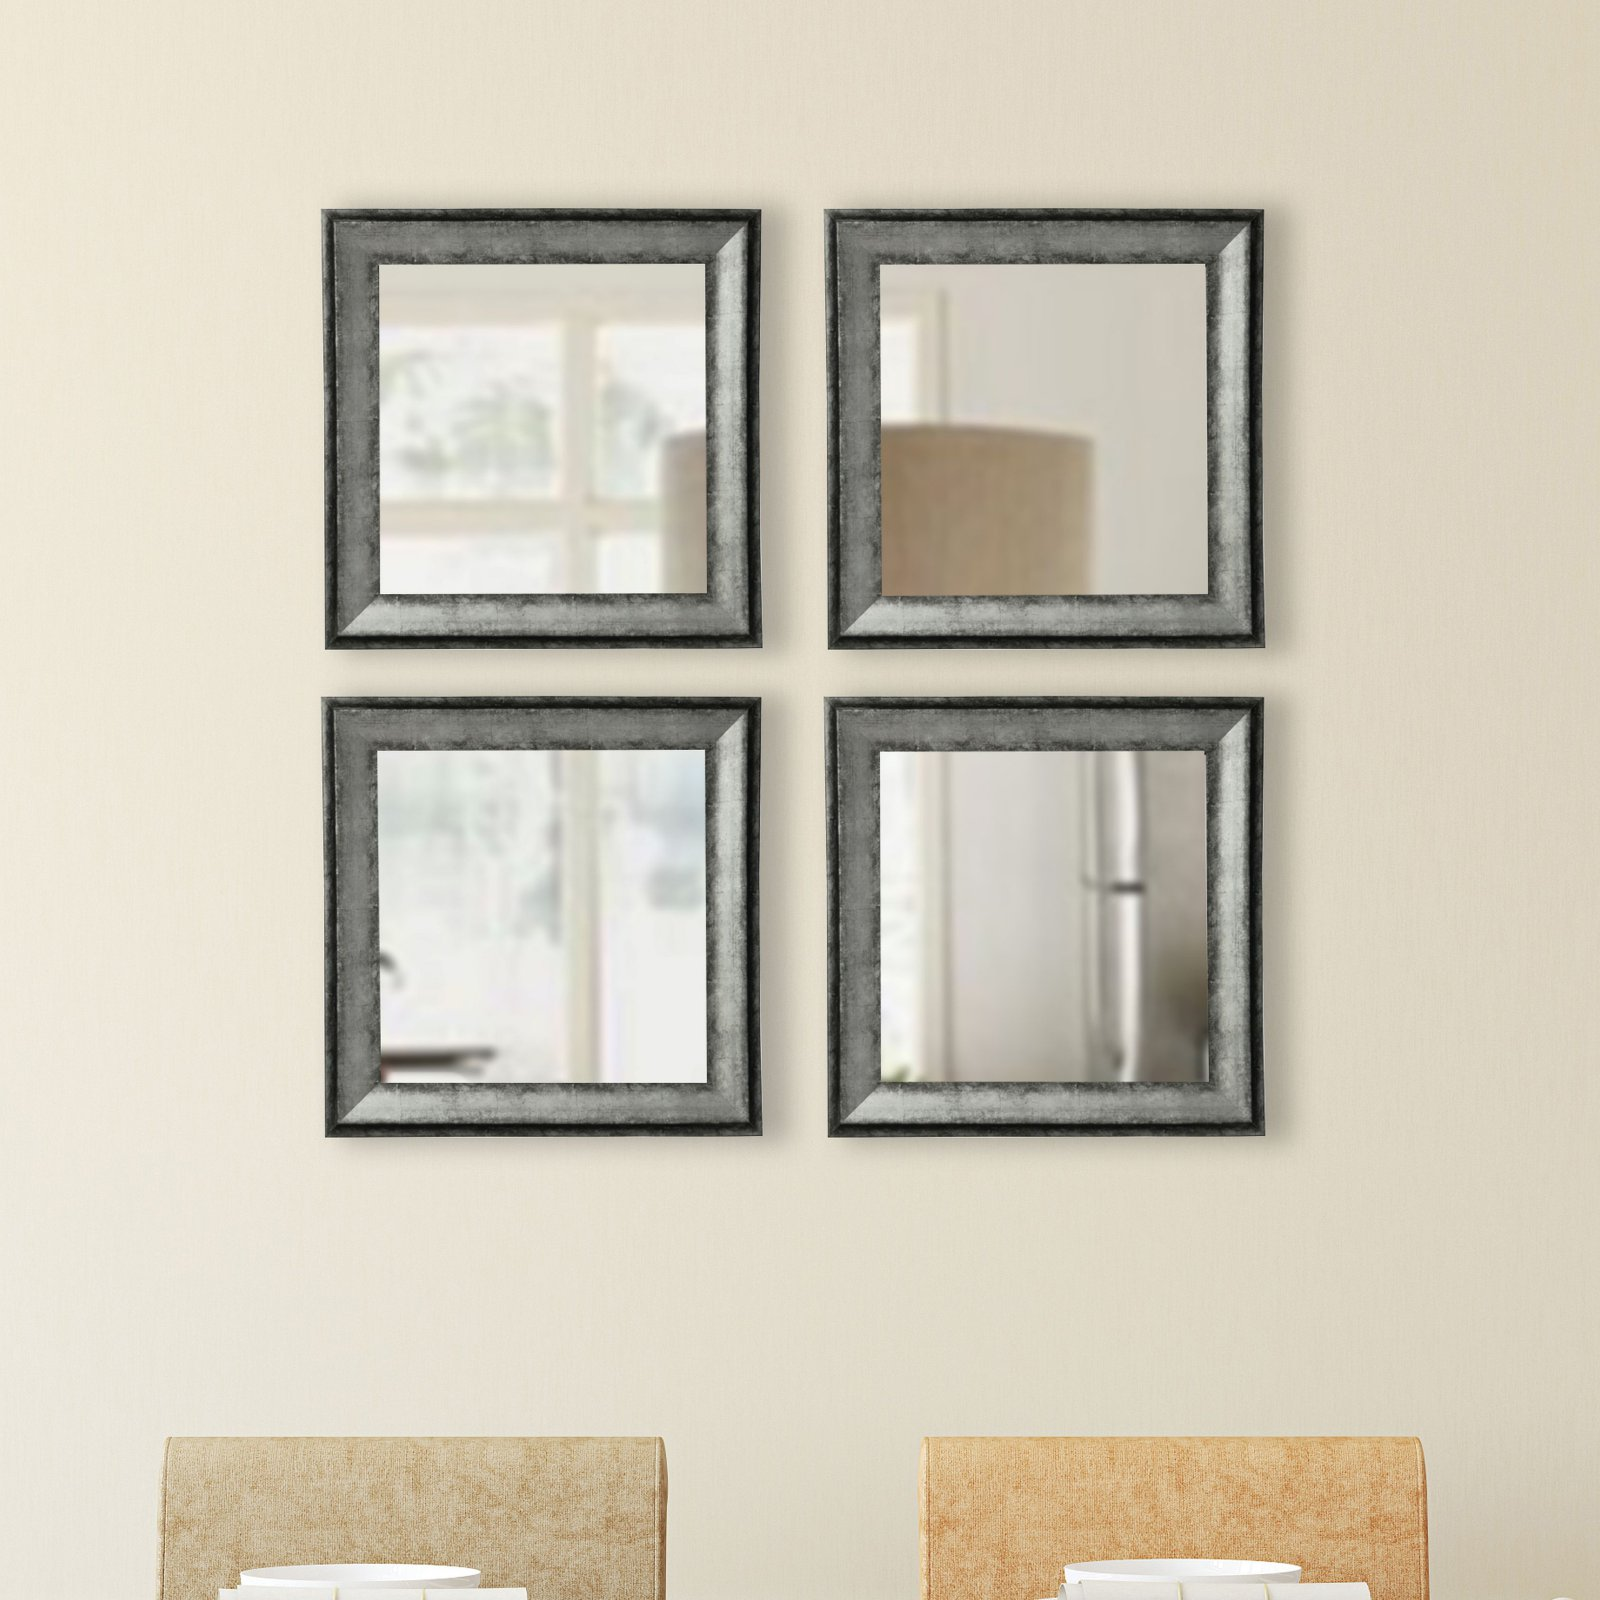 Rayne Mirrors Emerson Addison Sterling Square Wall Mirror - Set of 4